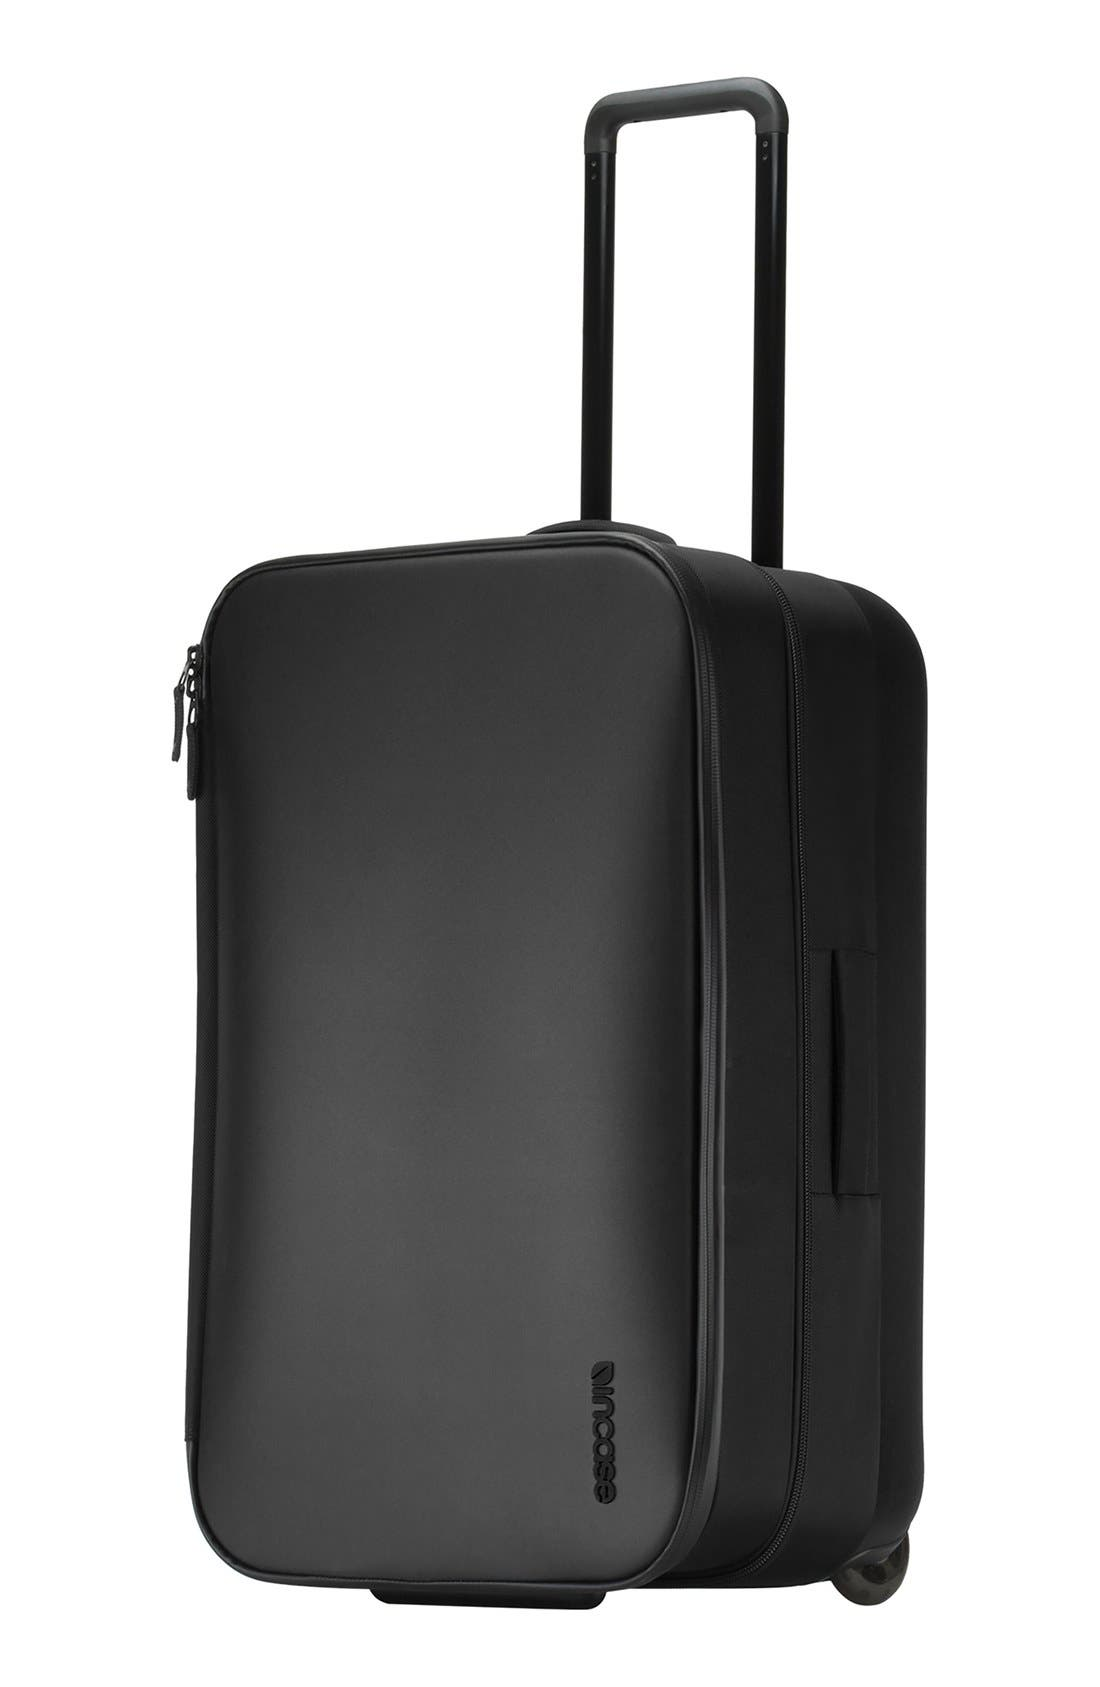 VIA 28-Inch Wheeled Suitcase,                             Alternate thumbnail 3, color,                             001